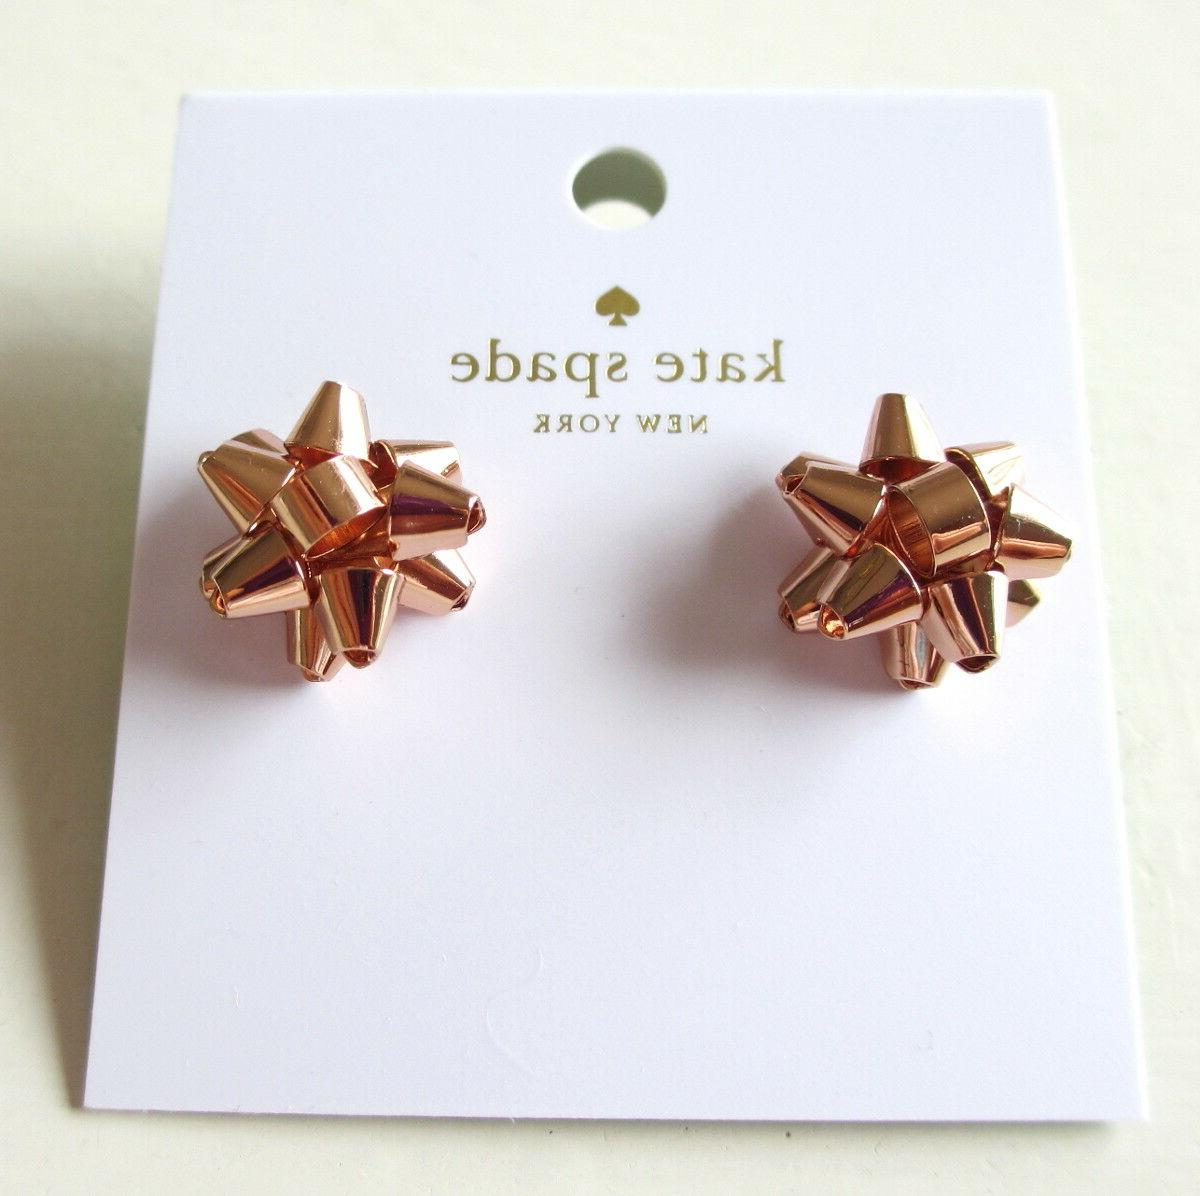 NEW Spade York Bourgeois Gift Stud Earrings Rose Tone W/